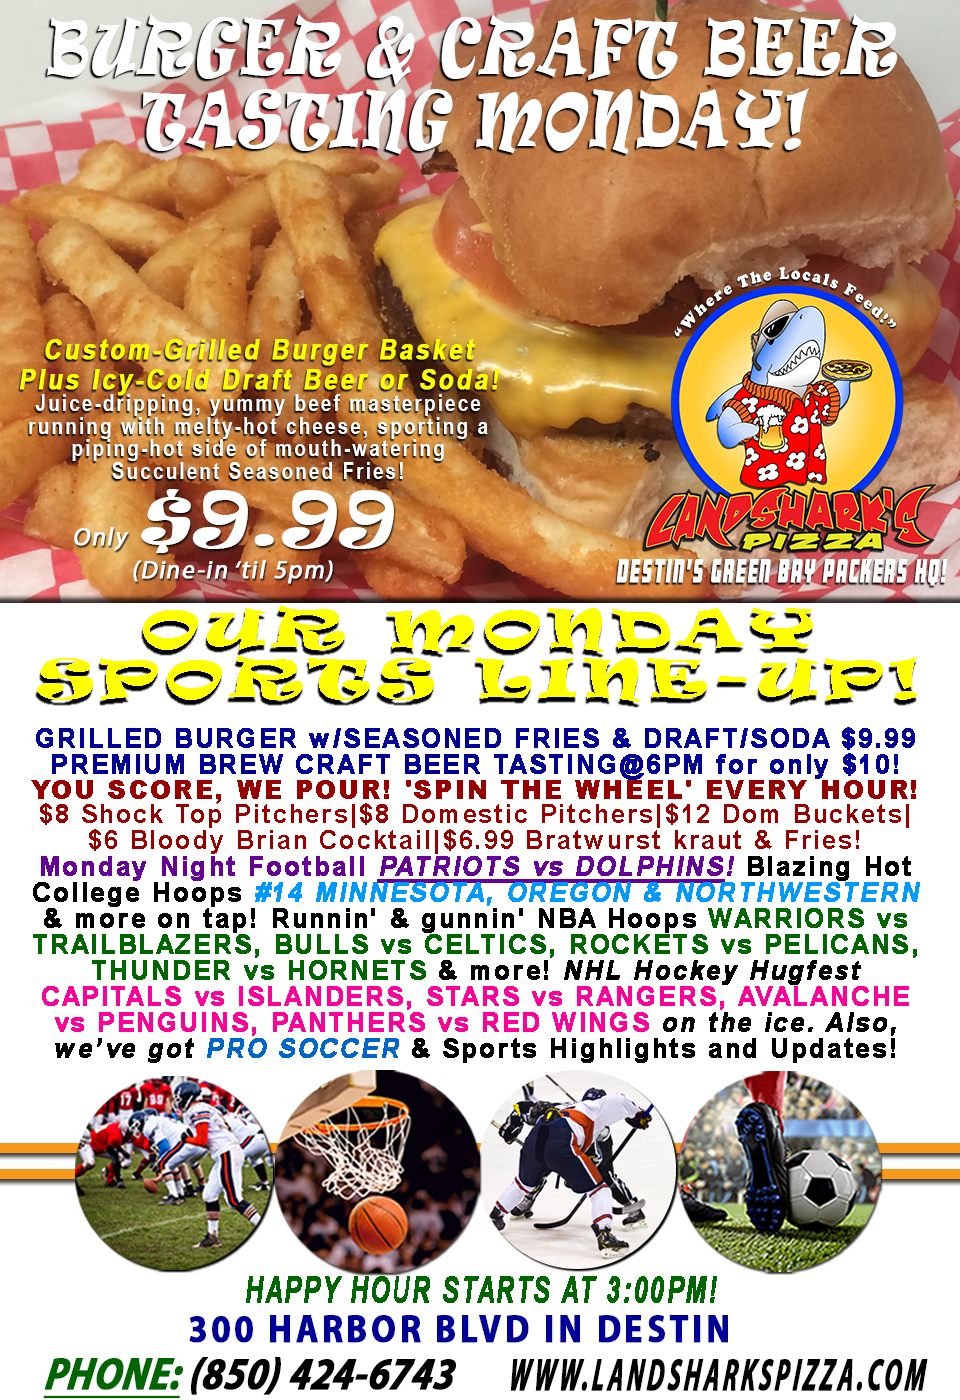 Sunny Burger & Brew Monday PATRIOTS vs DOLPHINS & You Score, We Pour|College Hoops, NHL & CRAFT BEER TASTING!